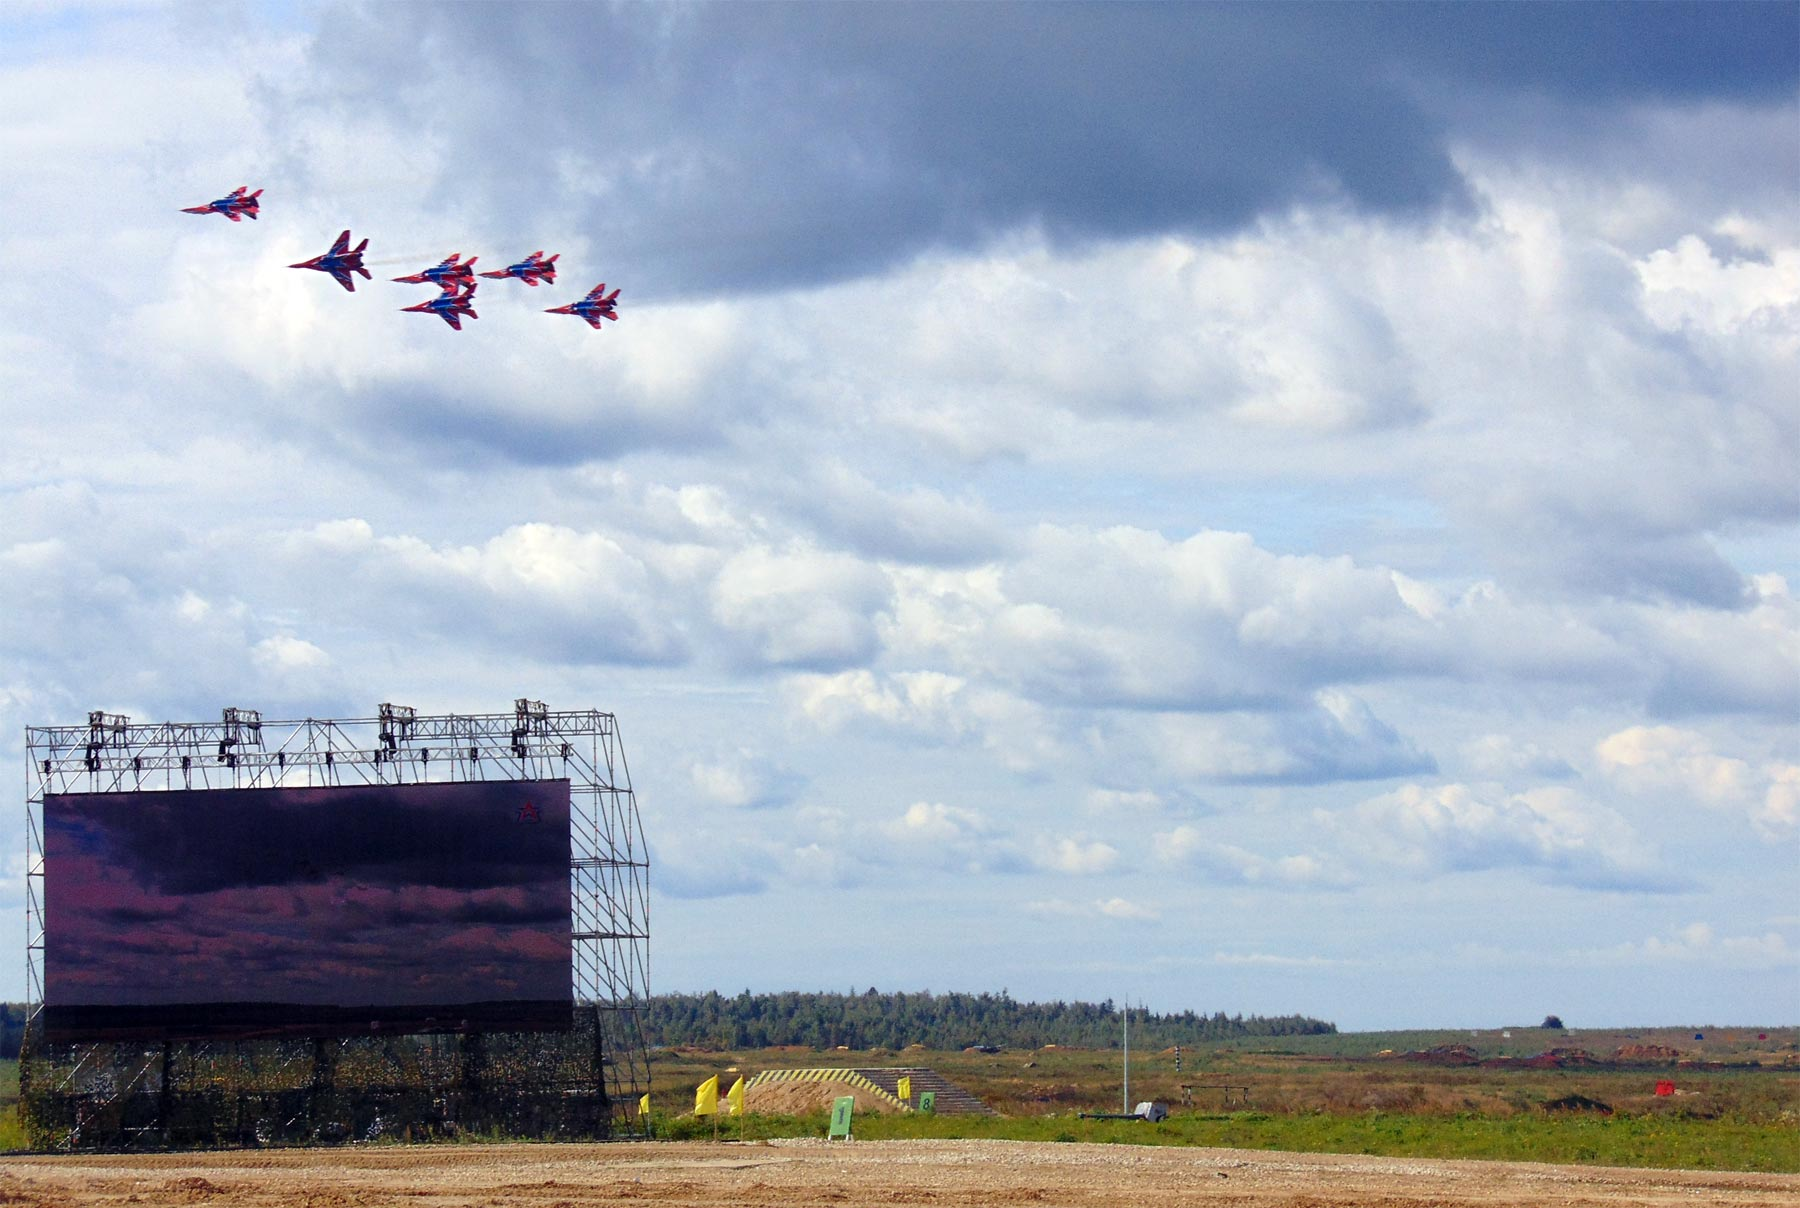 avia show at Kubinka